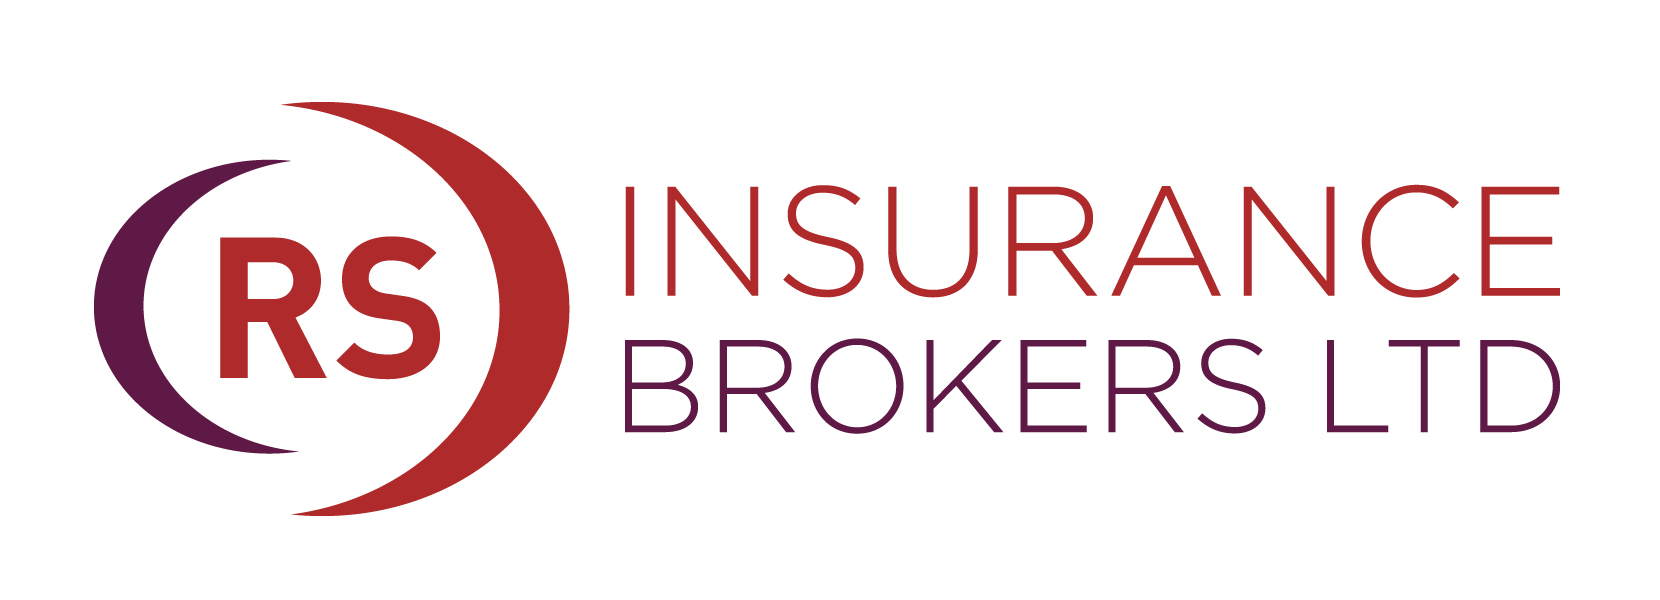 R S Insurance Brokers Ltd - Personal & Commercial Insurance Brokers